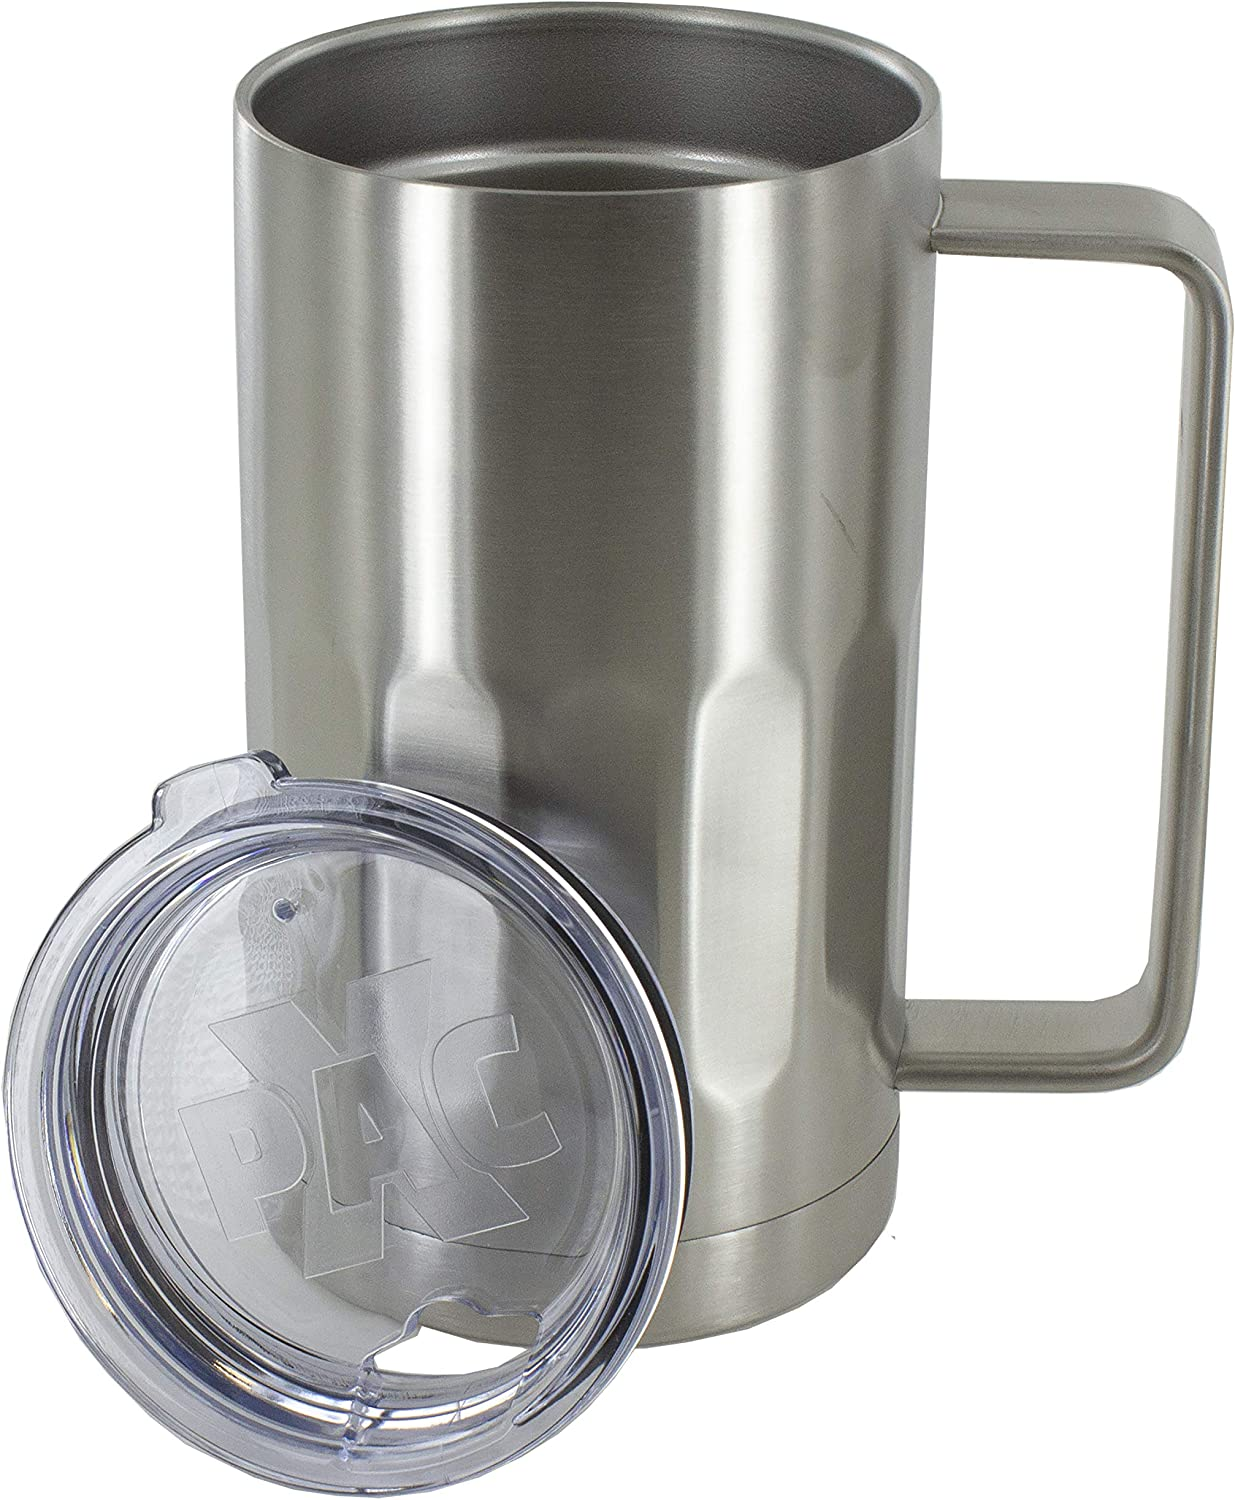 Amazon Com Stainless Steel Beer Mug With Lid 20 Ounce Double Walled Vacuum Insulated Beer Mug By Maxam Shatterproof And Spill Resistant 2 Pack Beer Mugs Steins